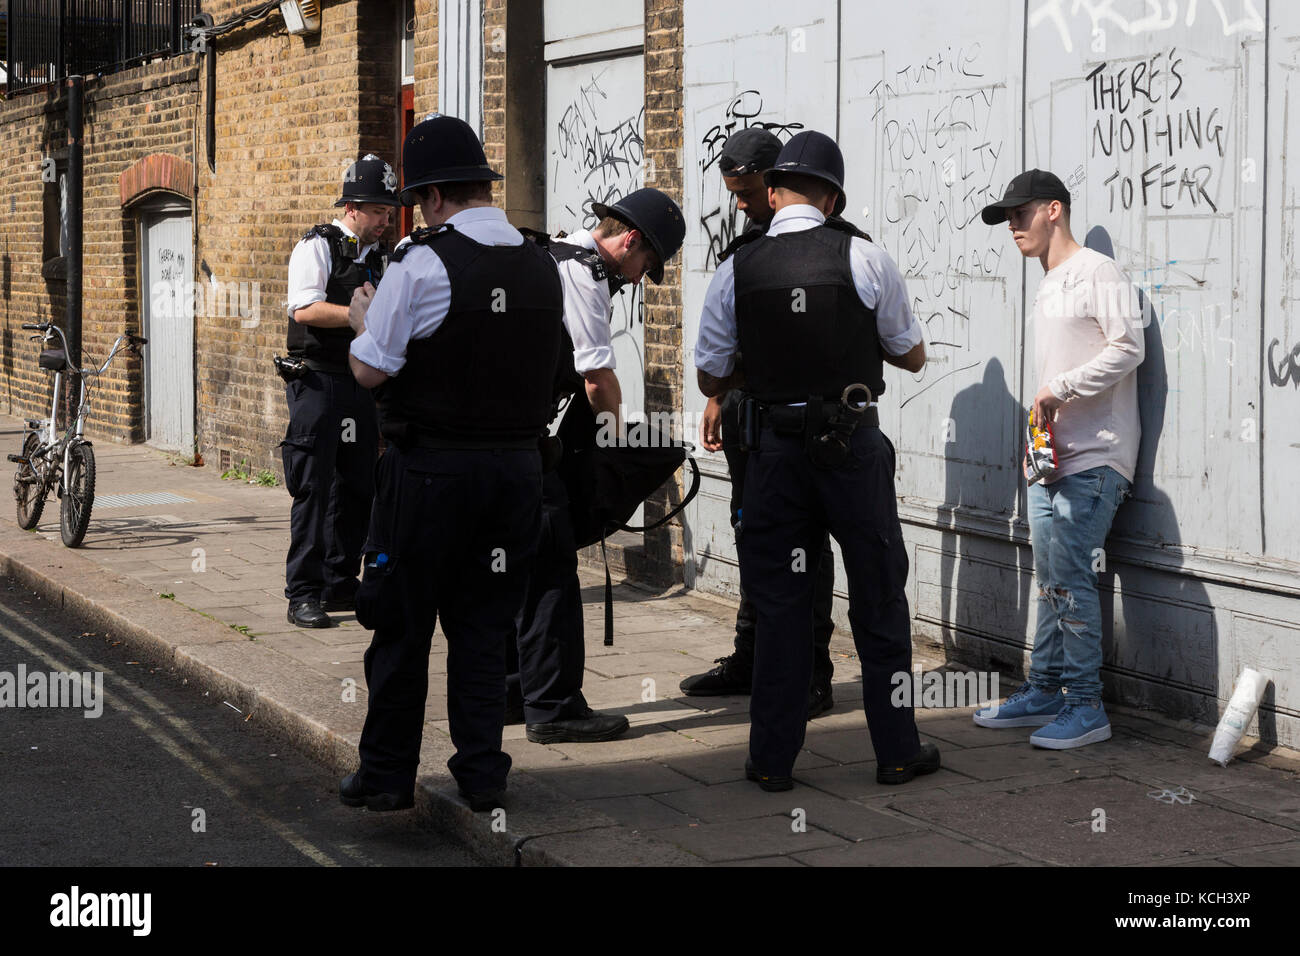 Police searching revellers, stop and search, at Notting Hill Carnival, London, England, UK - Stock Image